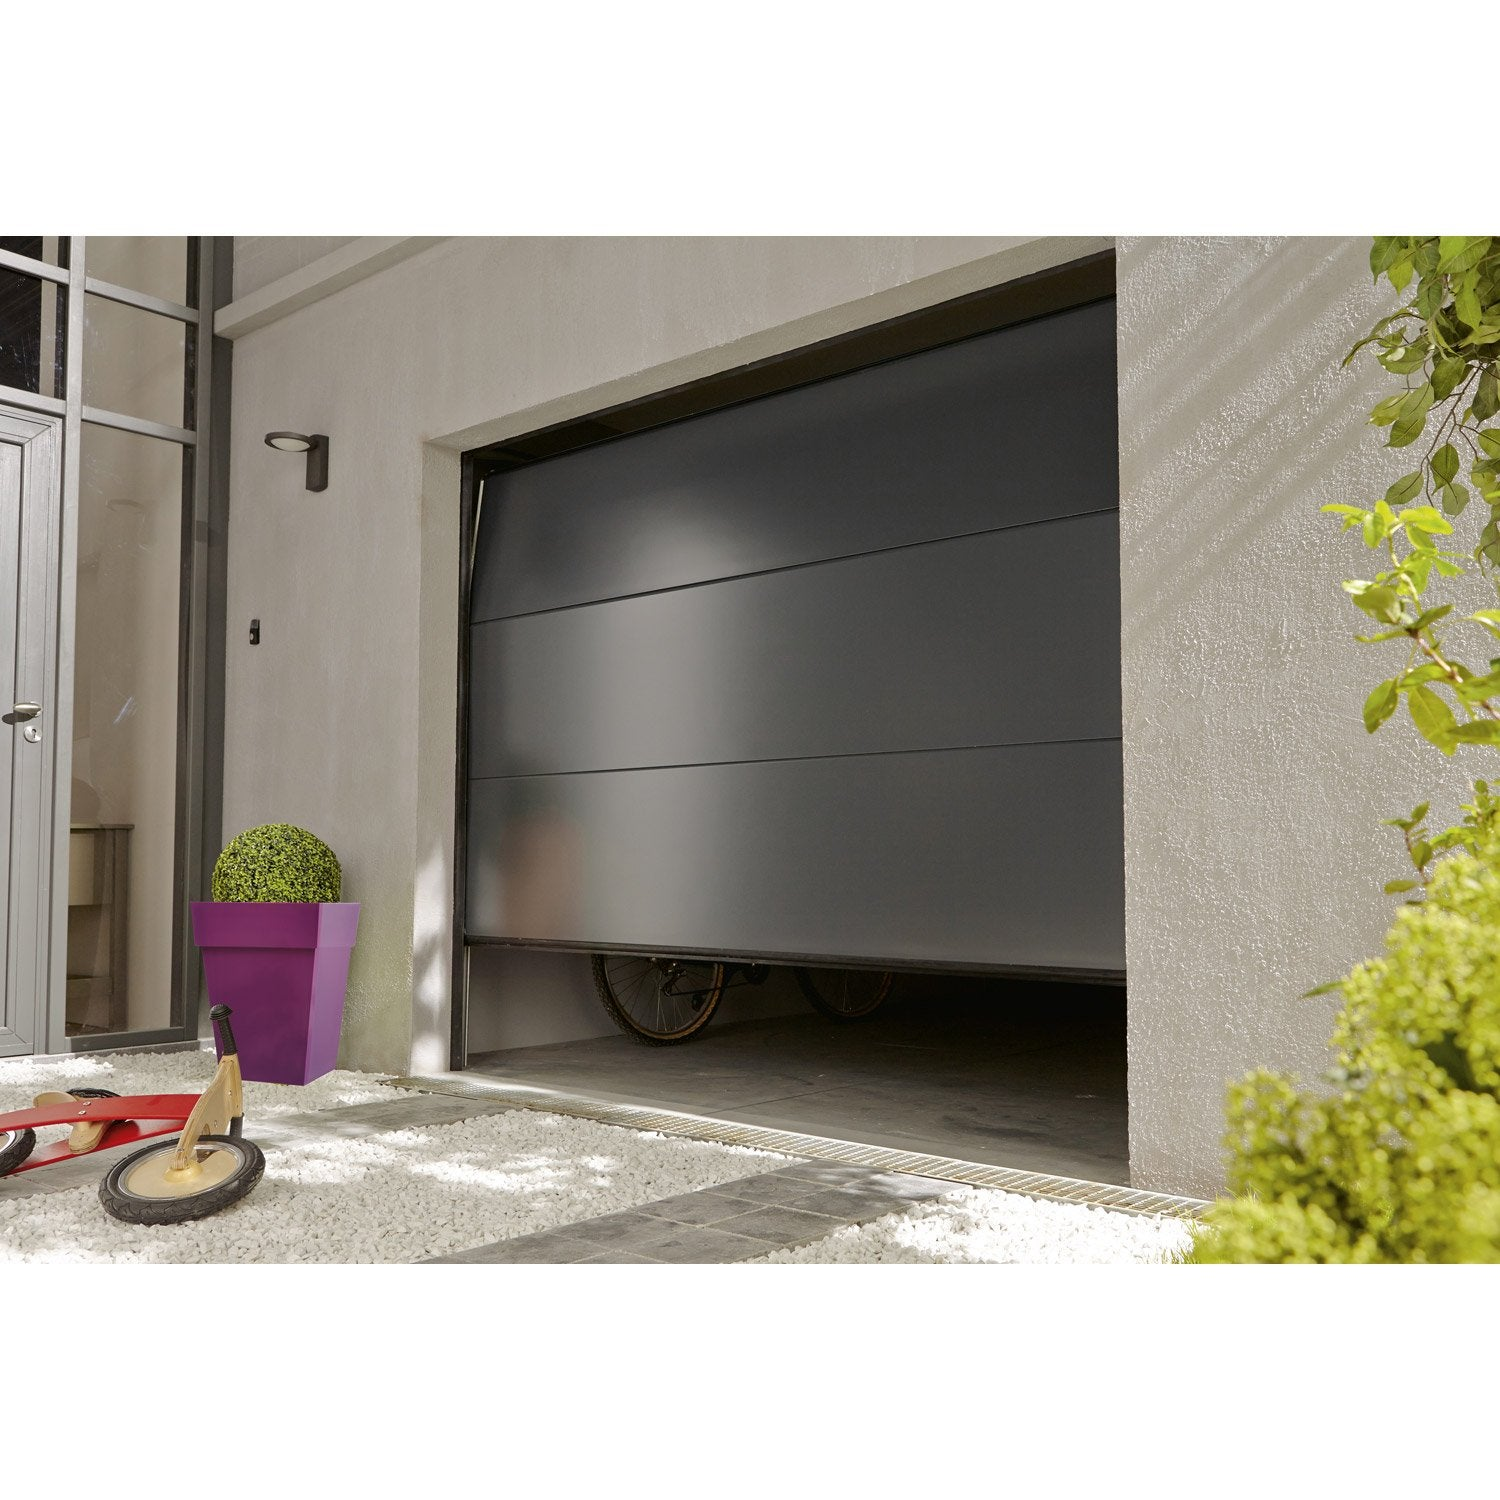 Porte de garage sectionnelle artens x cm for Ecksofa 300 x 200